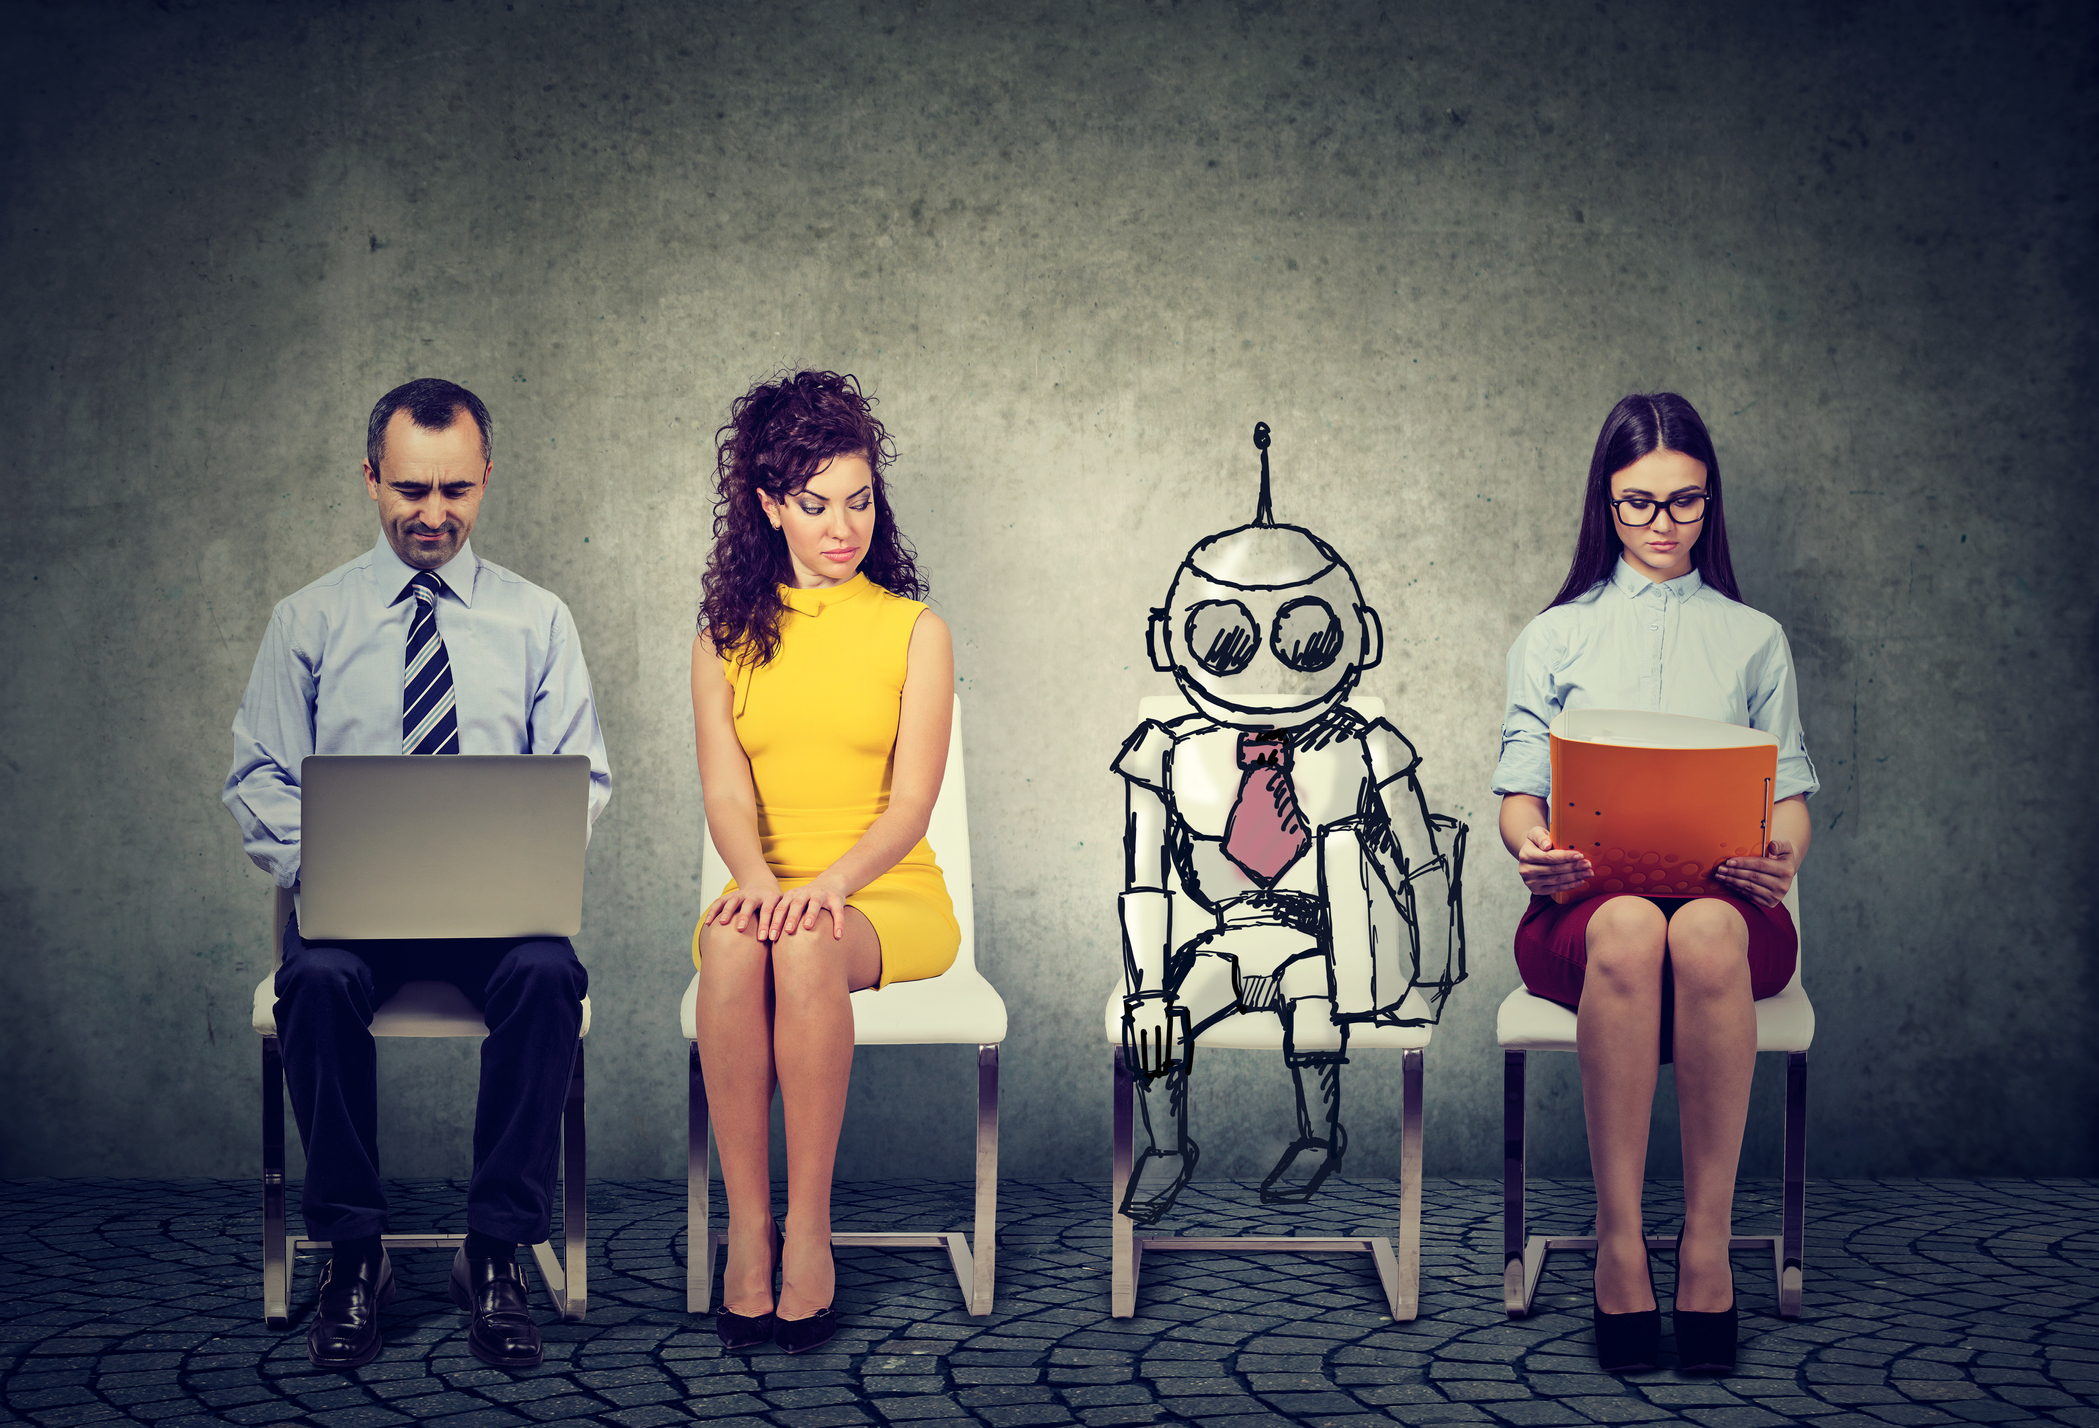 Robot proof your employment skills